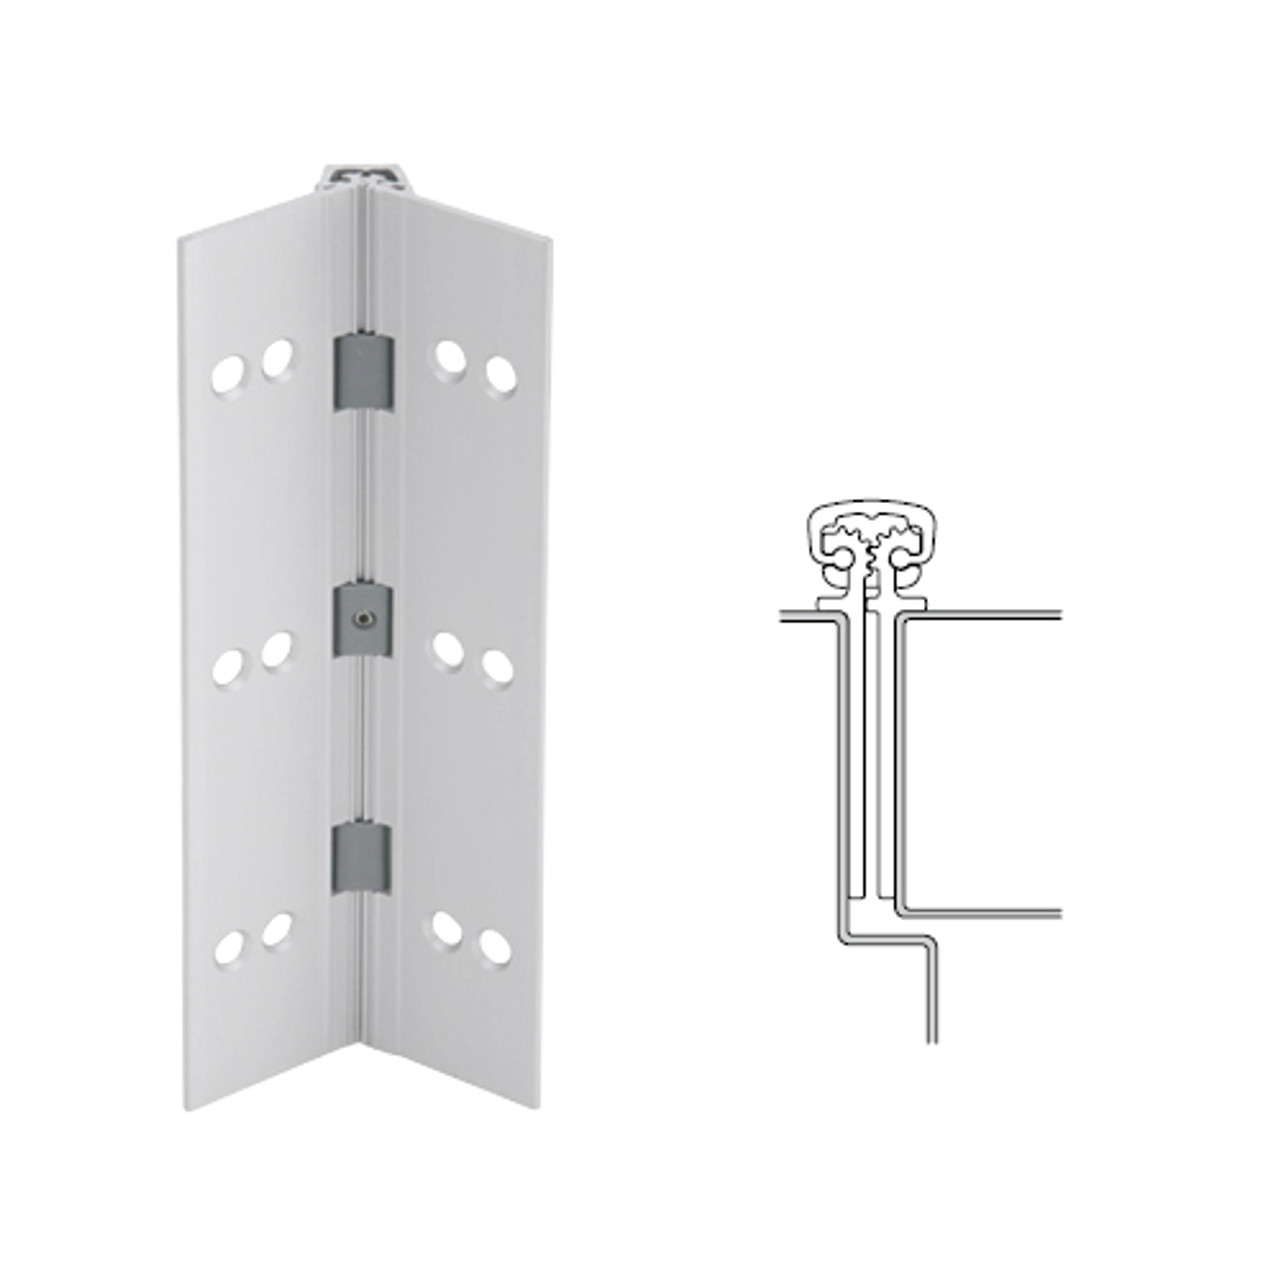 027XY-US28-120-SECWDHM IVES Full Mortise Continuous Geared Hinges with Security Screws - Hex Pin Drive in Satin Aluminum